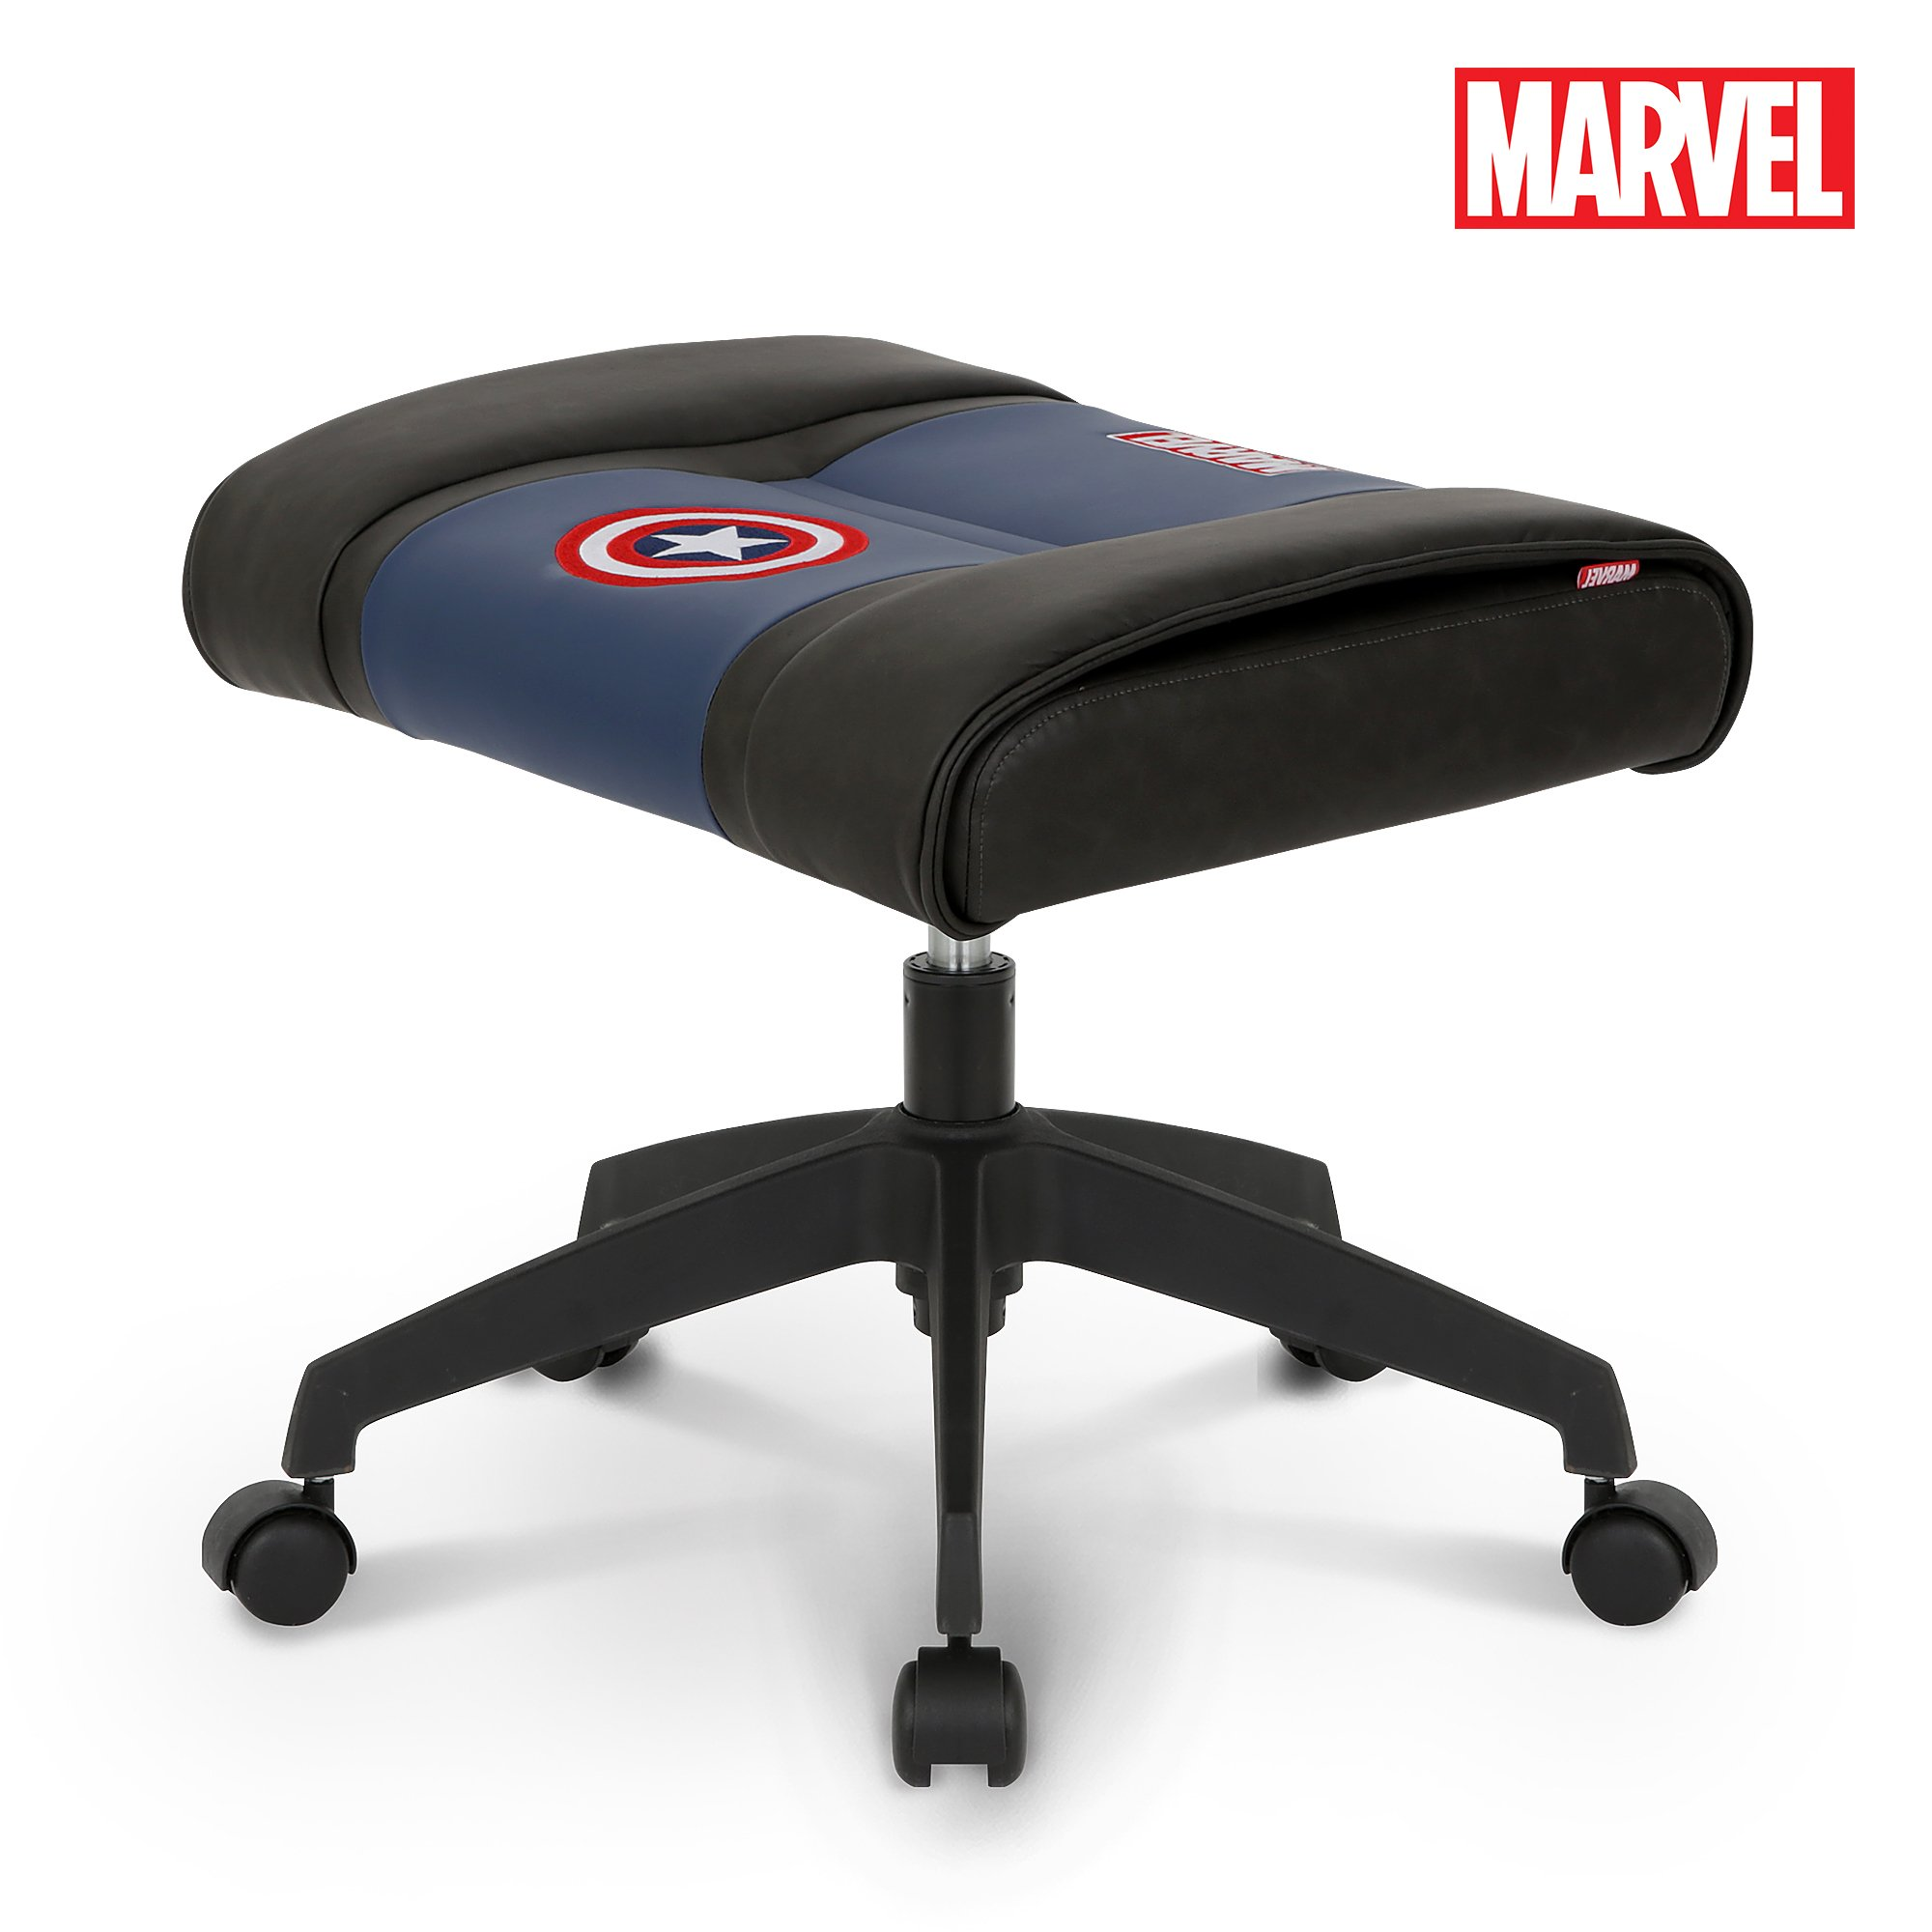 Licensed Marvel Ottoman Foot Rest Seat Stool Makeup Chair w/Wheel Makeup Chair : Height Adjustable Office Home Furniture Premium PU Leather, Neo Chair (Captain America, Blue) by Neo Chair